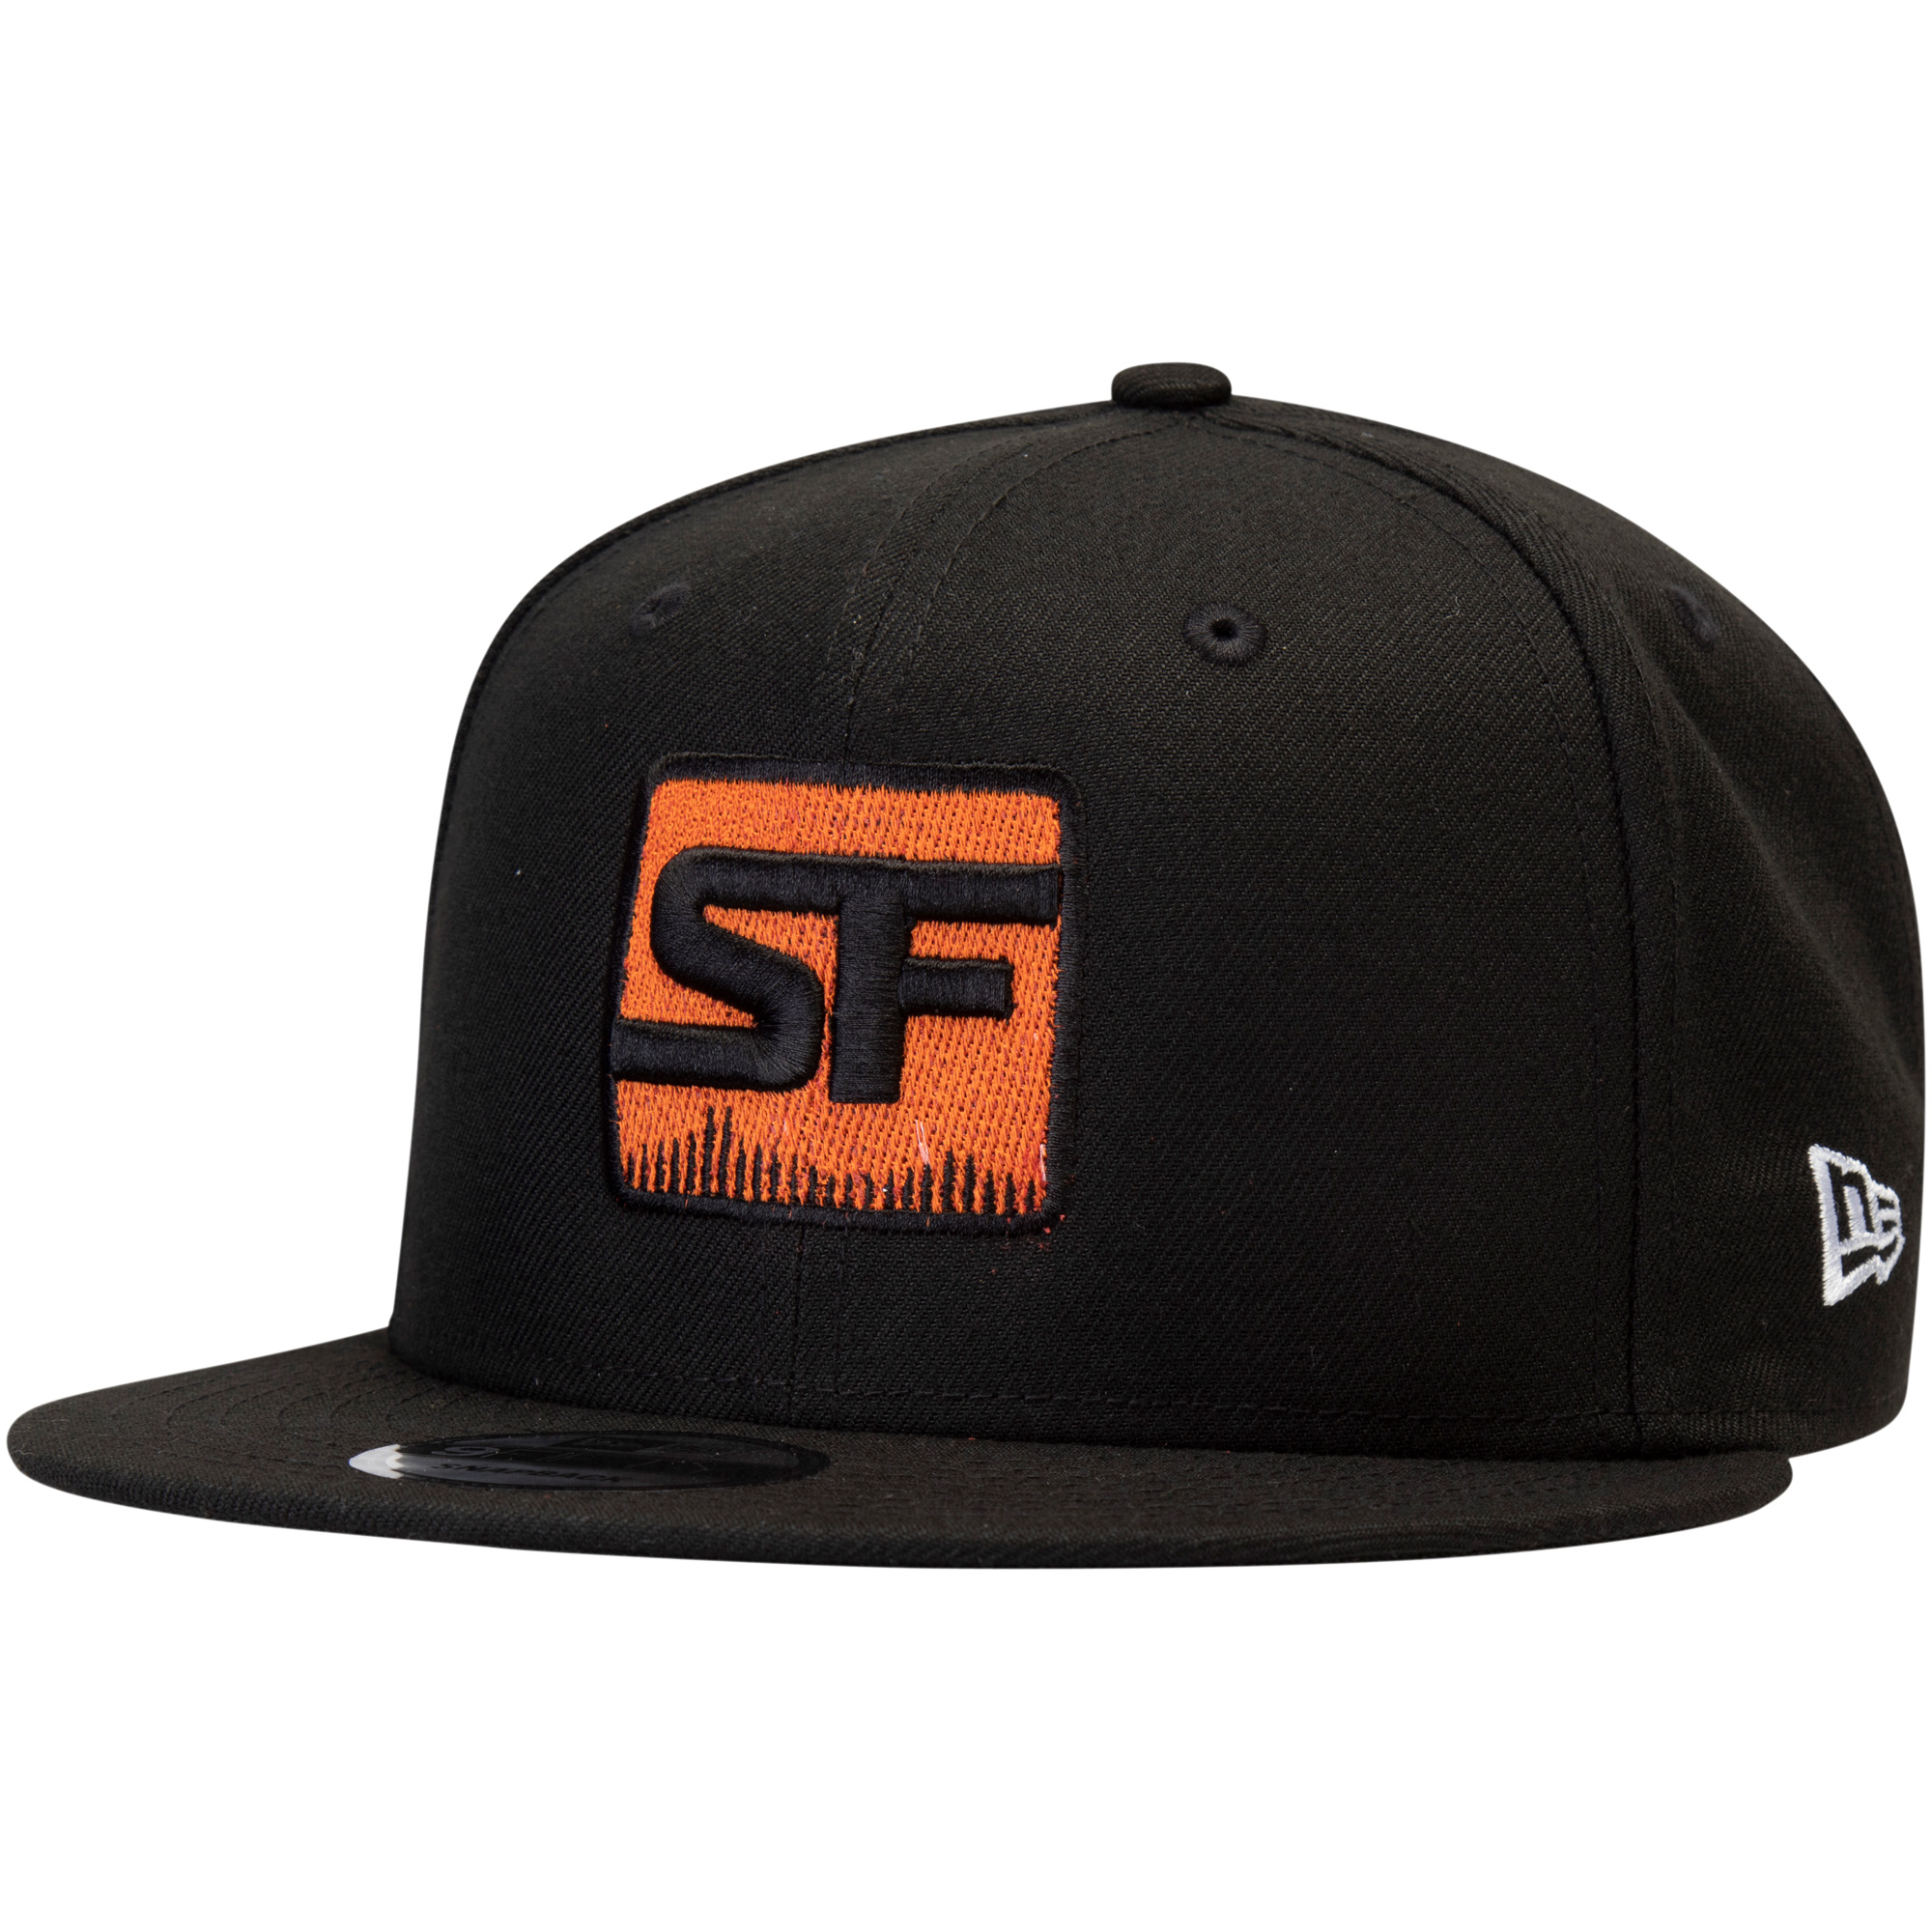 San Francisco Shock Overwatch League New Era Solid Team Adjustable Snapback Hat - Black - OSFA